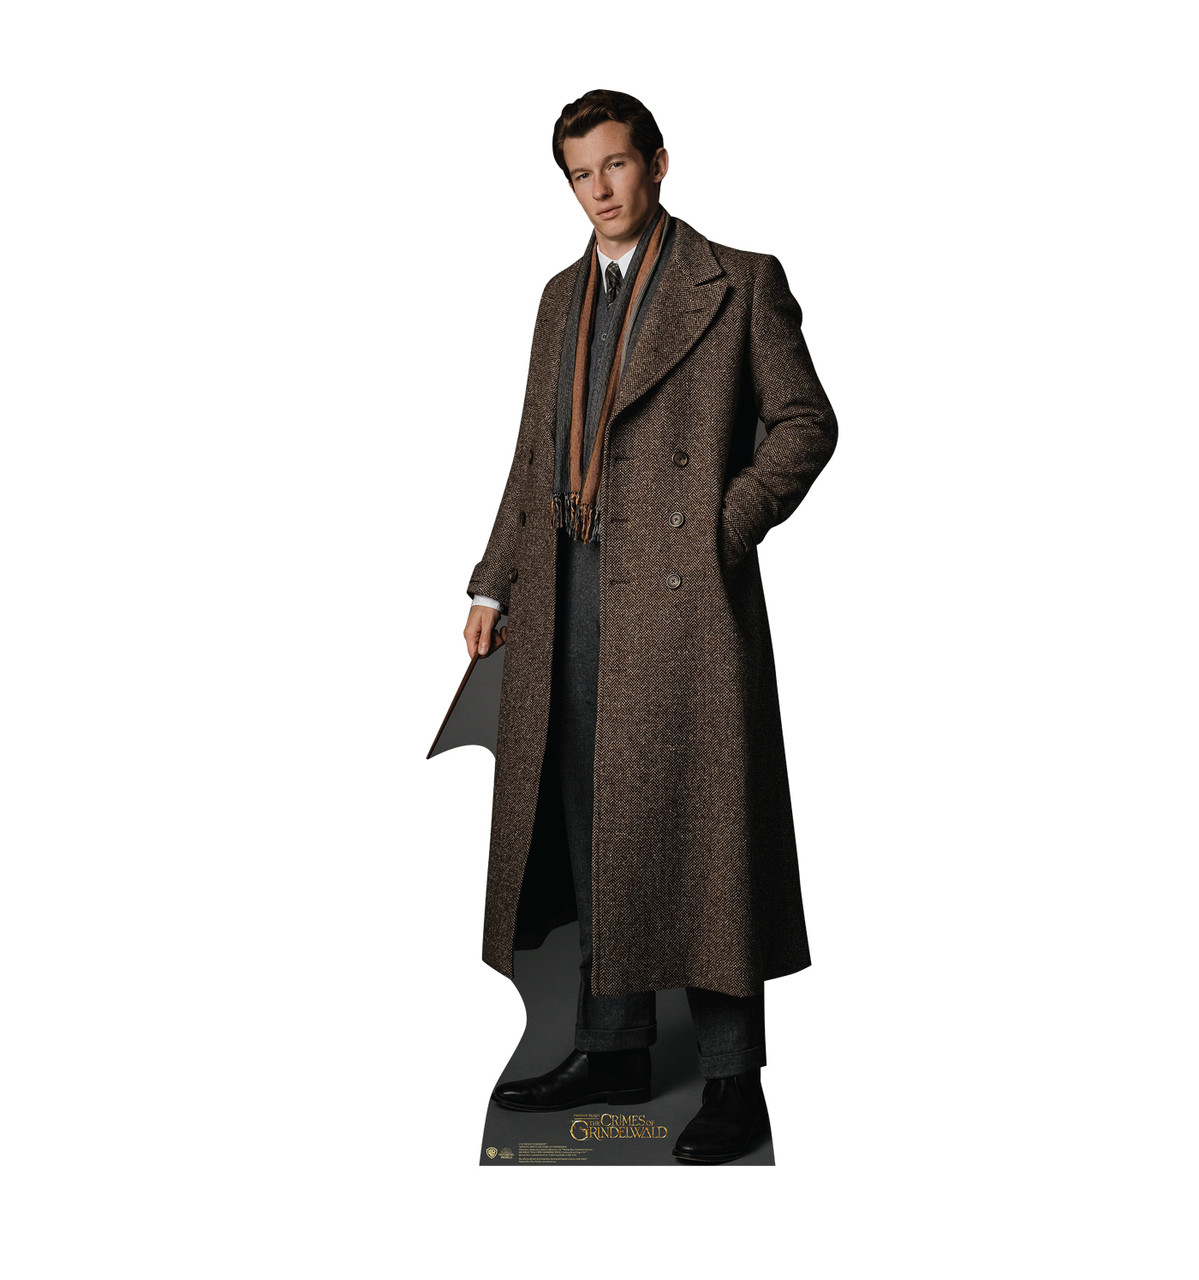 Theseus Scamander Lifes-size Cardboard Standee.